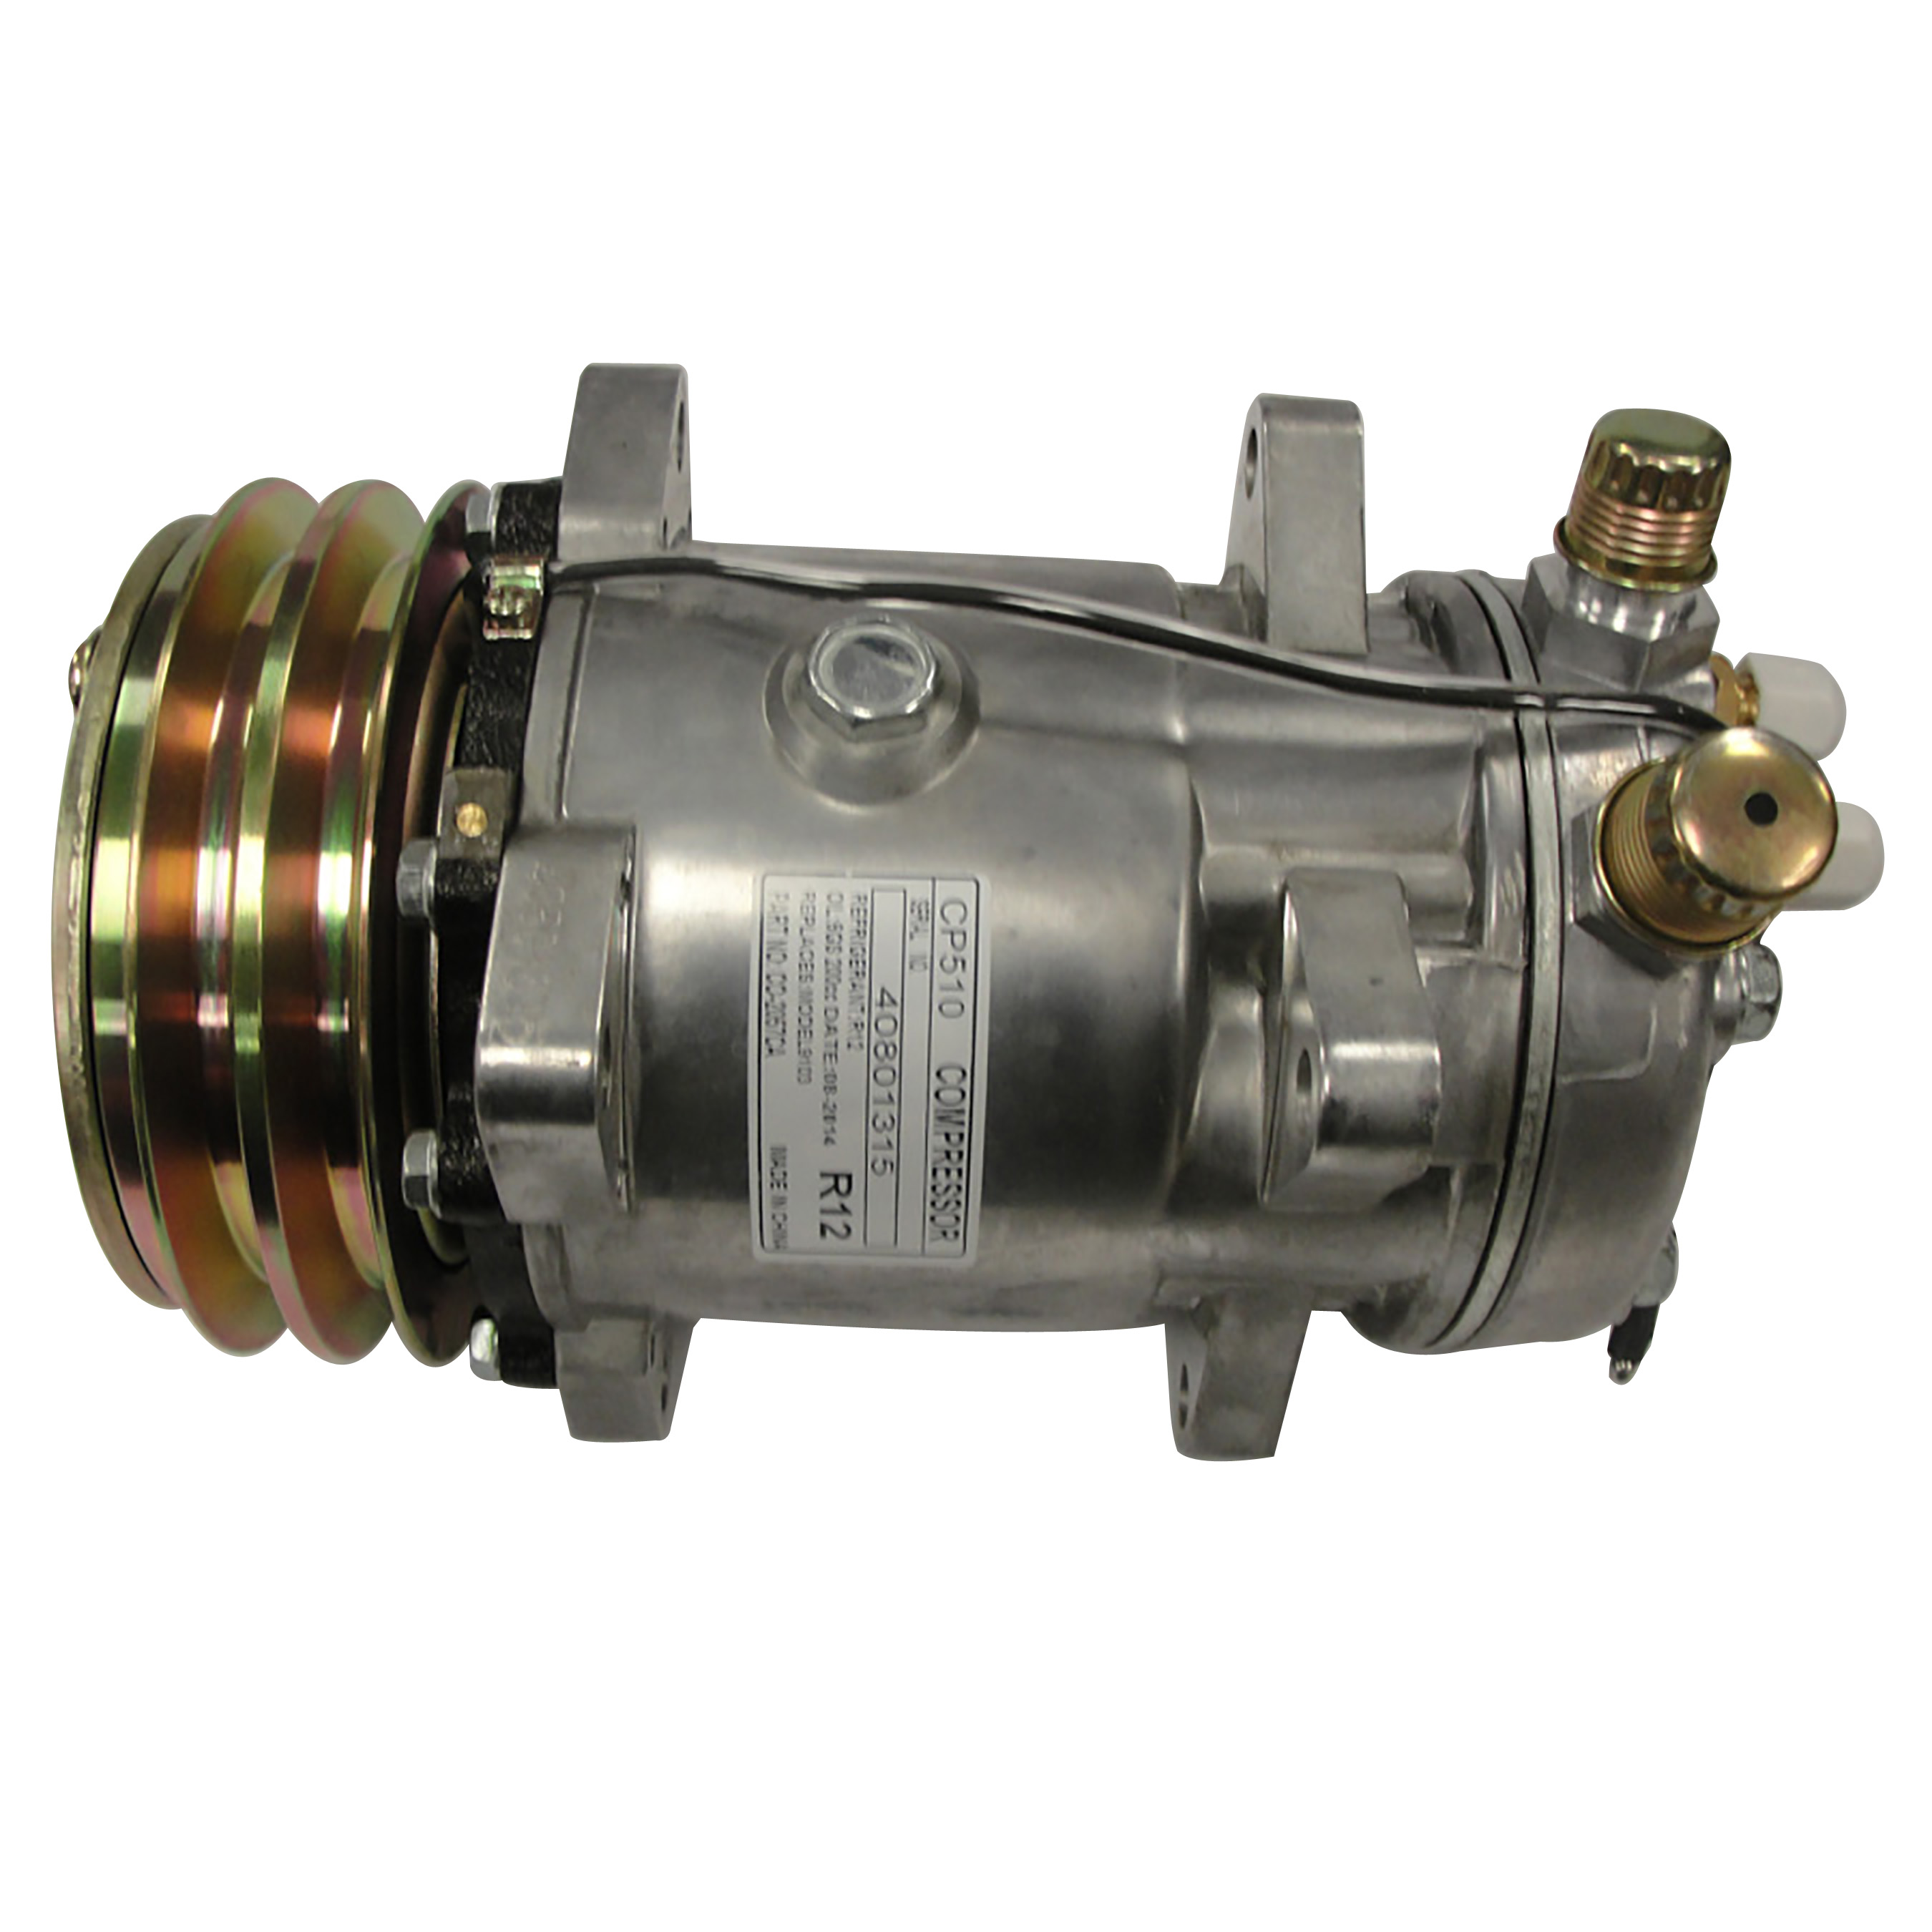 Massey-Ferguson AC Compressor Diameter: 5 1/4( 132mm) Voltage: 12